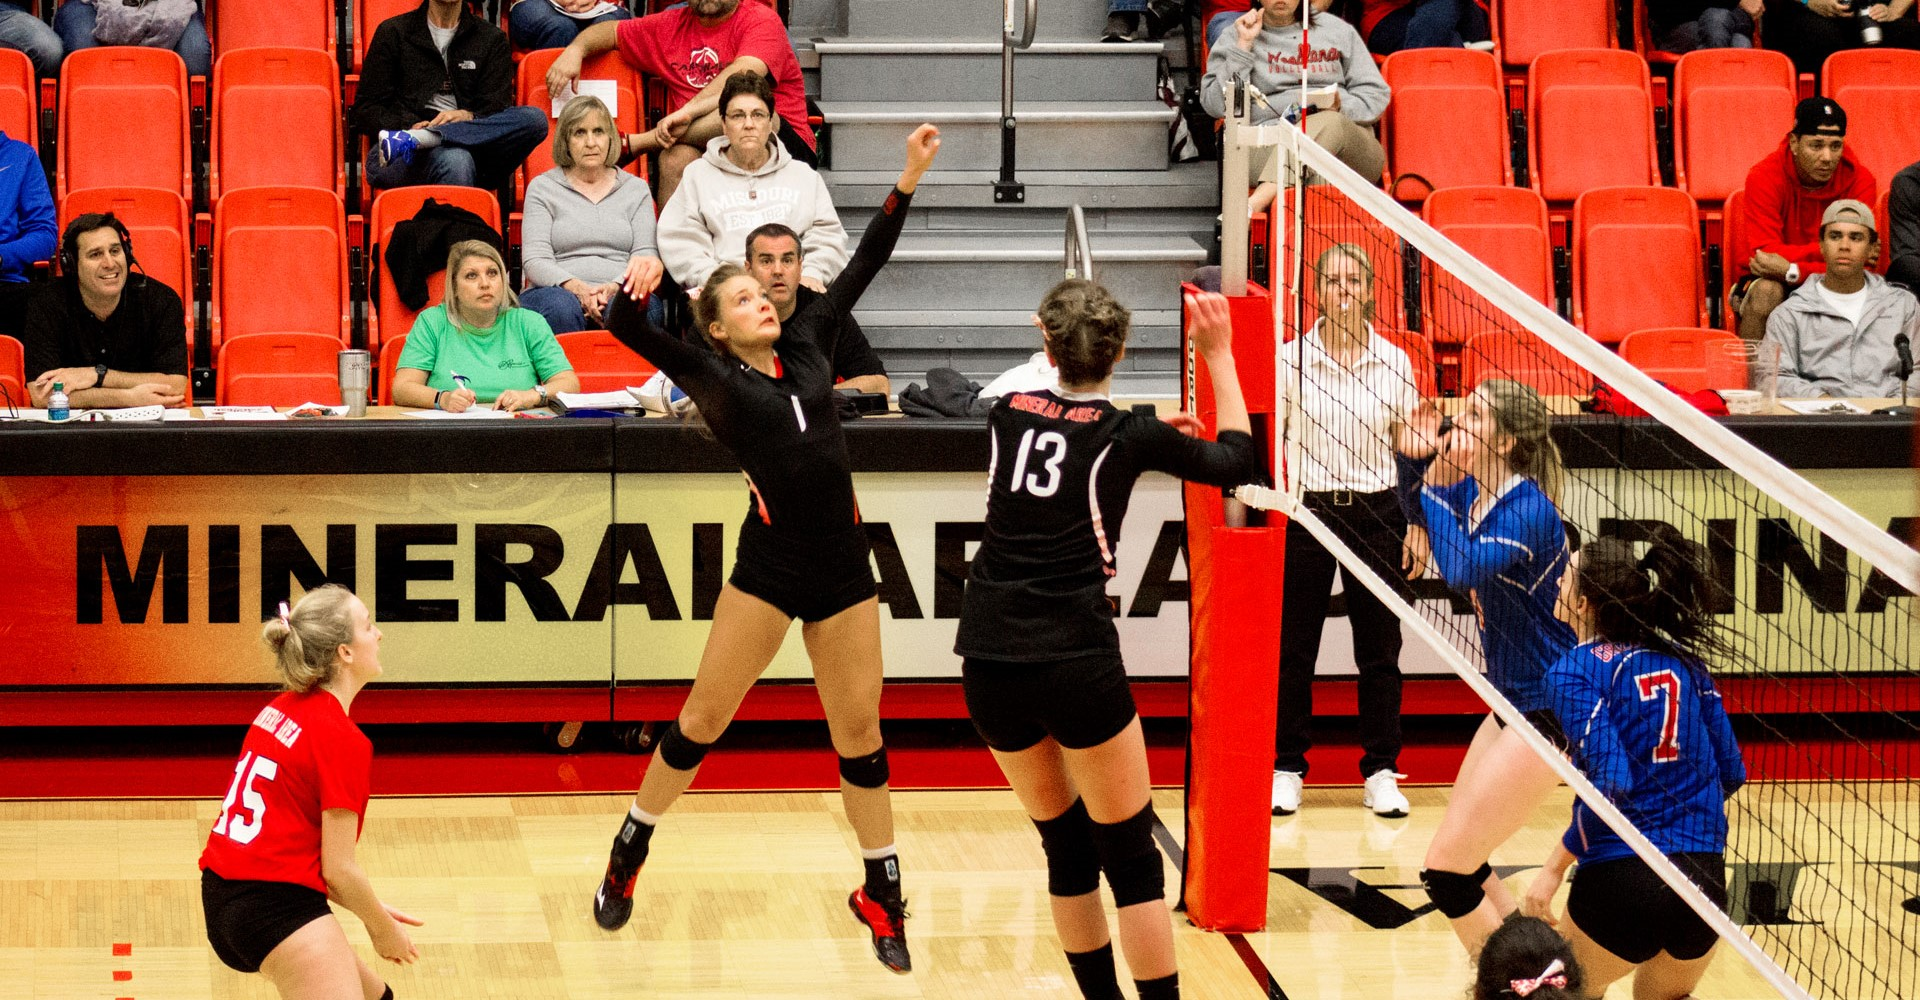 Image shows a volleyball game being played in Mineral Area College's field house